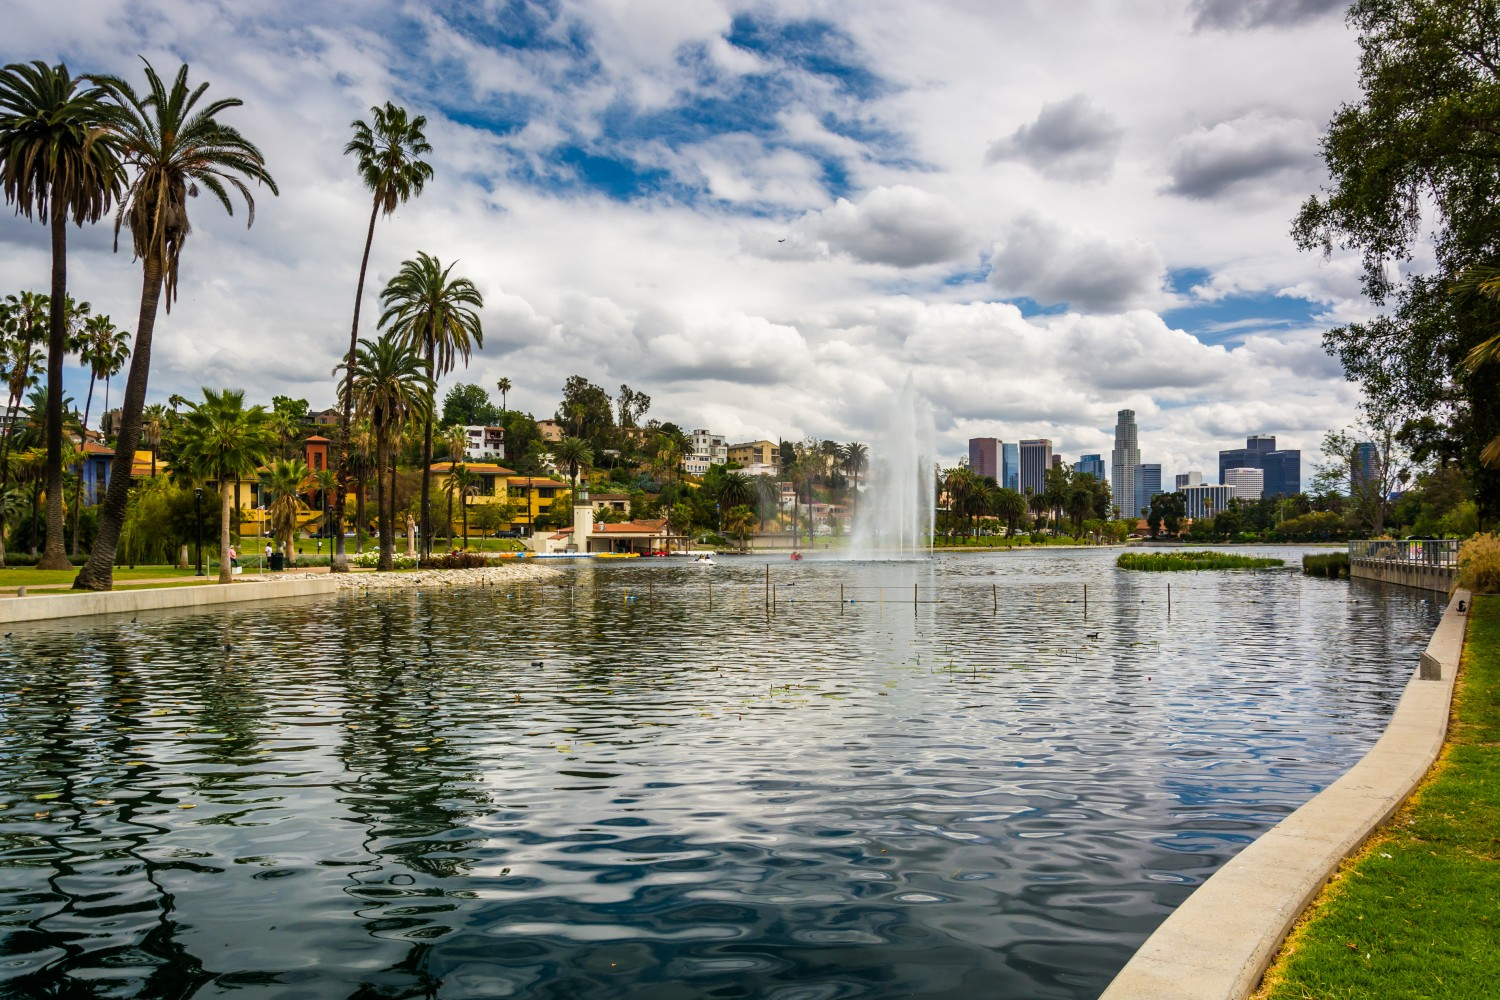 Echo Park Lake is One of the Coolest Places to Spend Time in LA. Click to Check out Our Travel Guide to Cool LA.